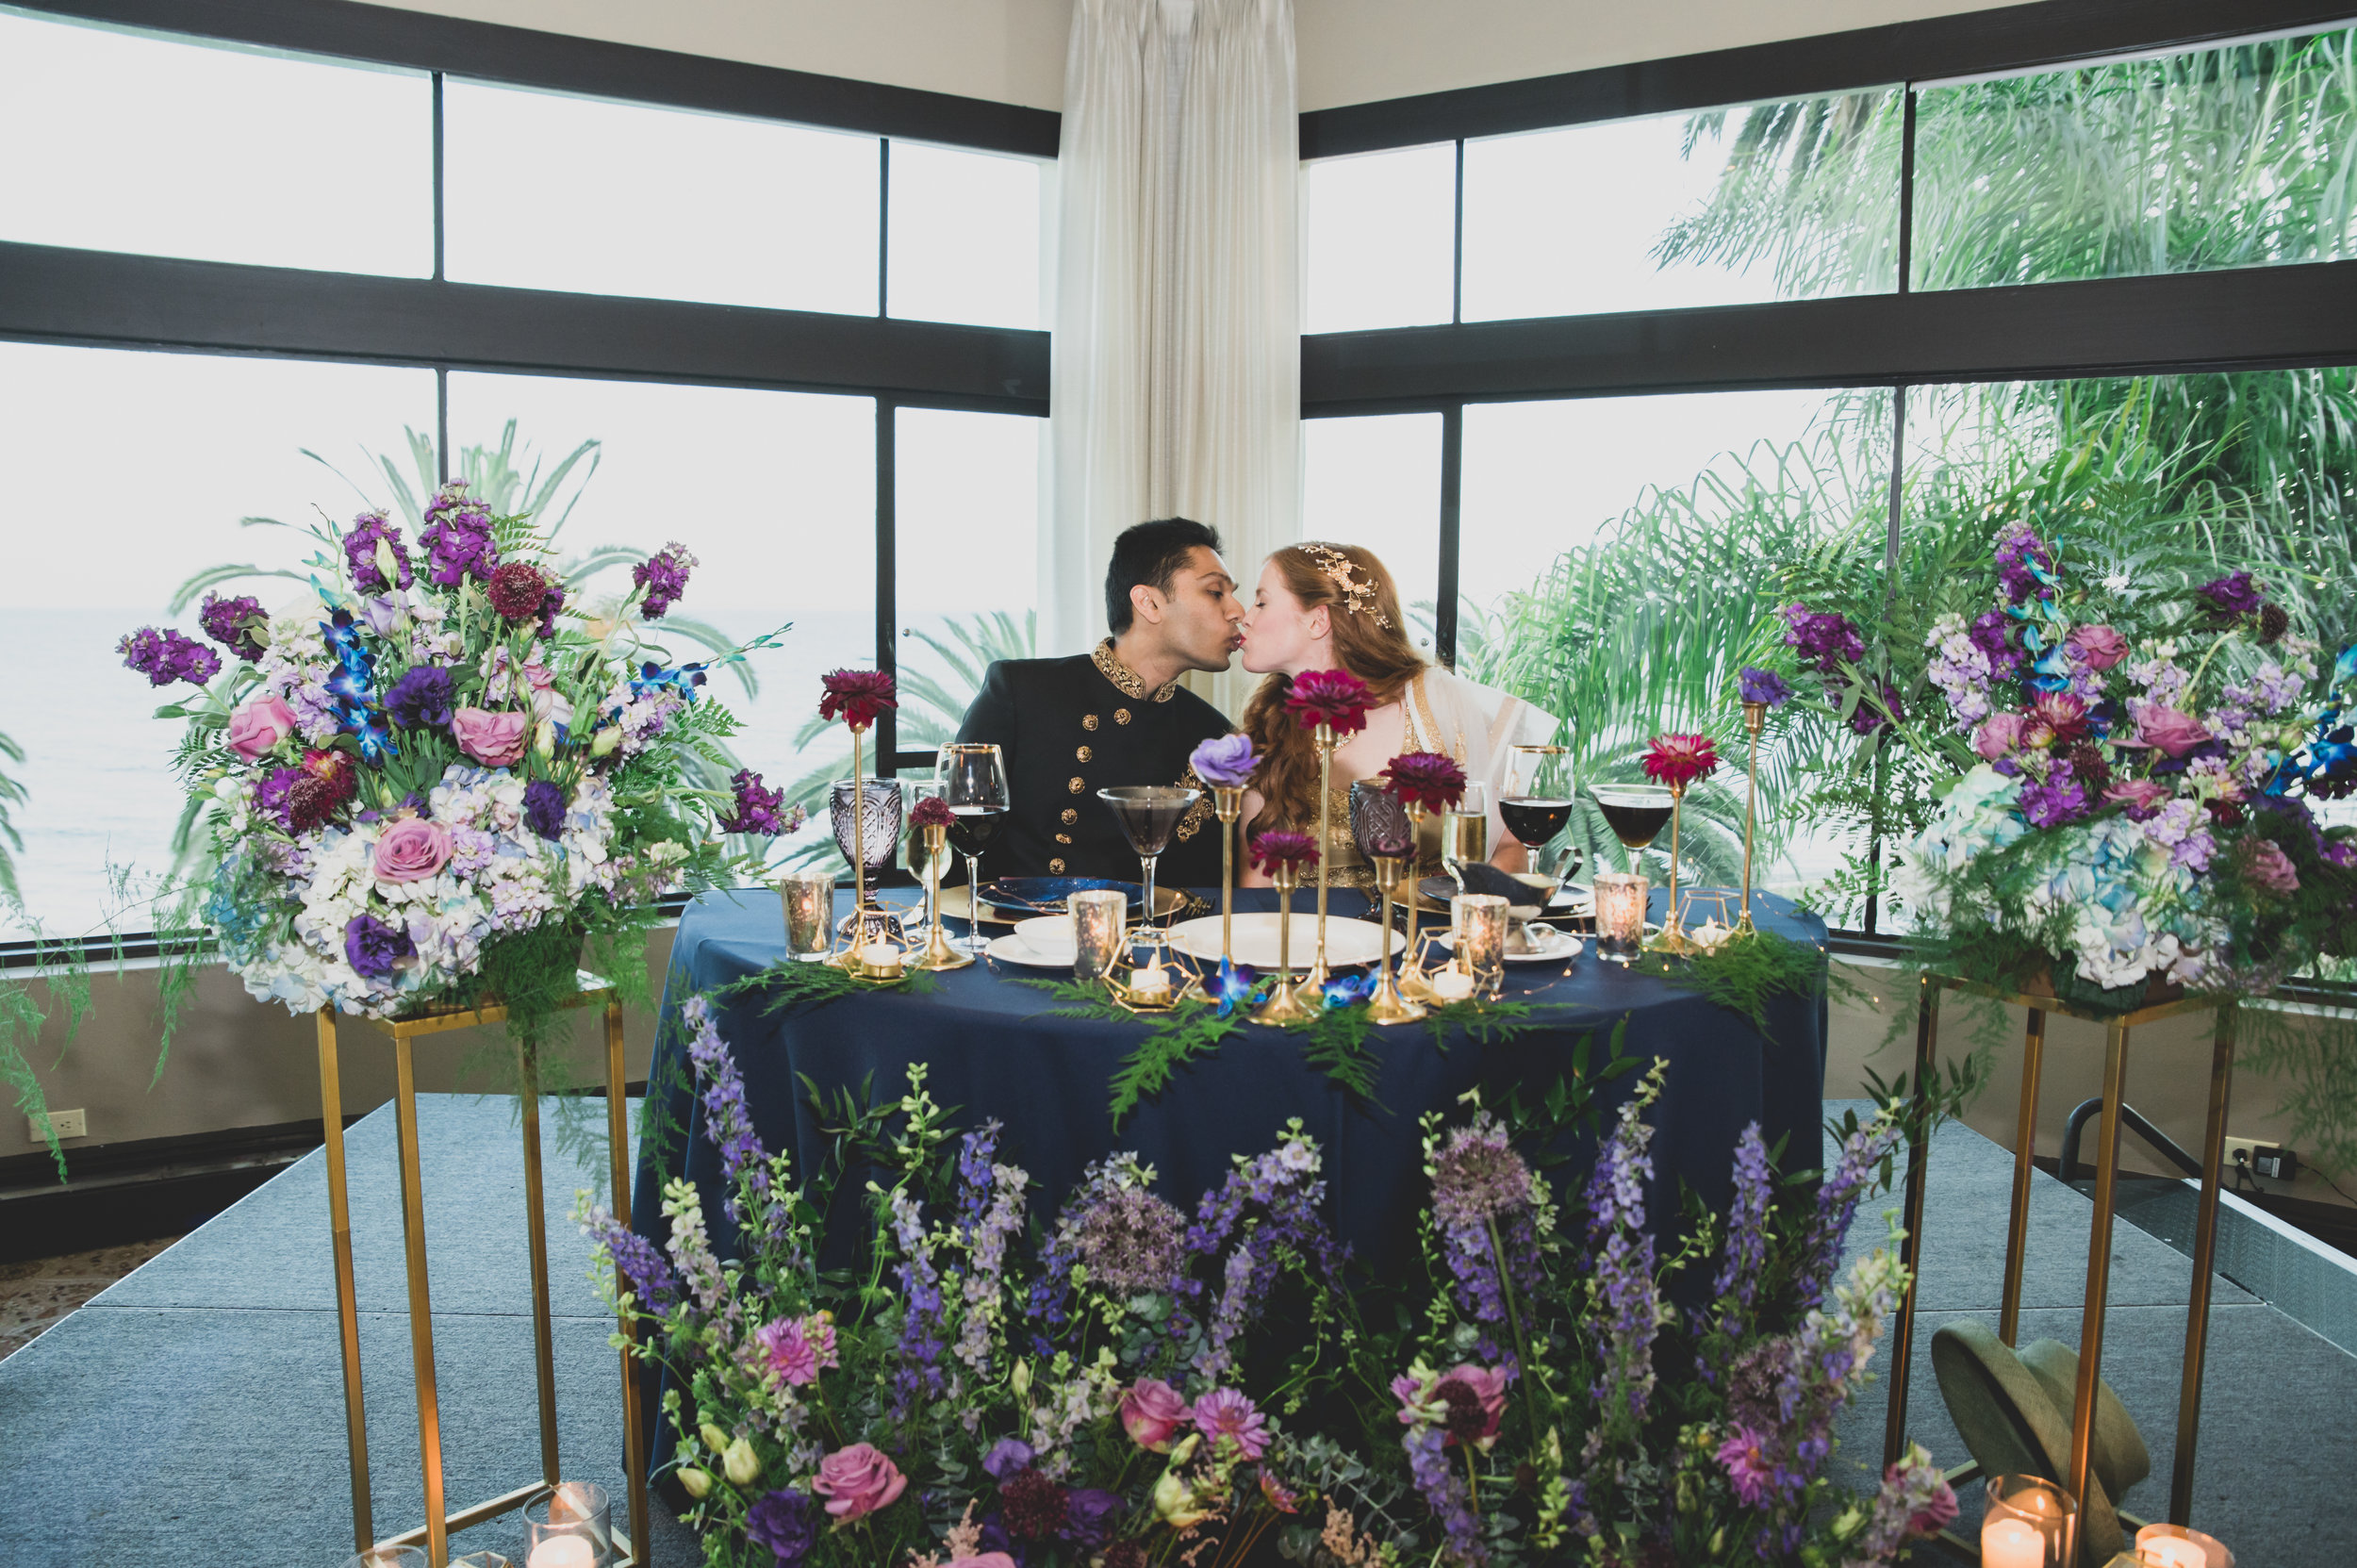 Modern Wedding Theme - Bride and at head table featuring flowers with vibrant colors and geometric shapes.